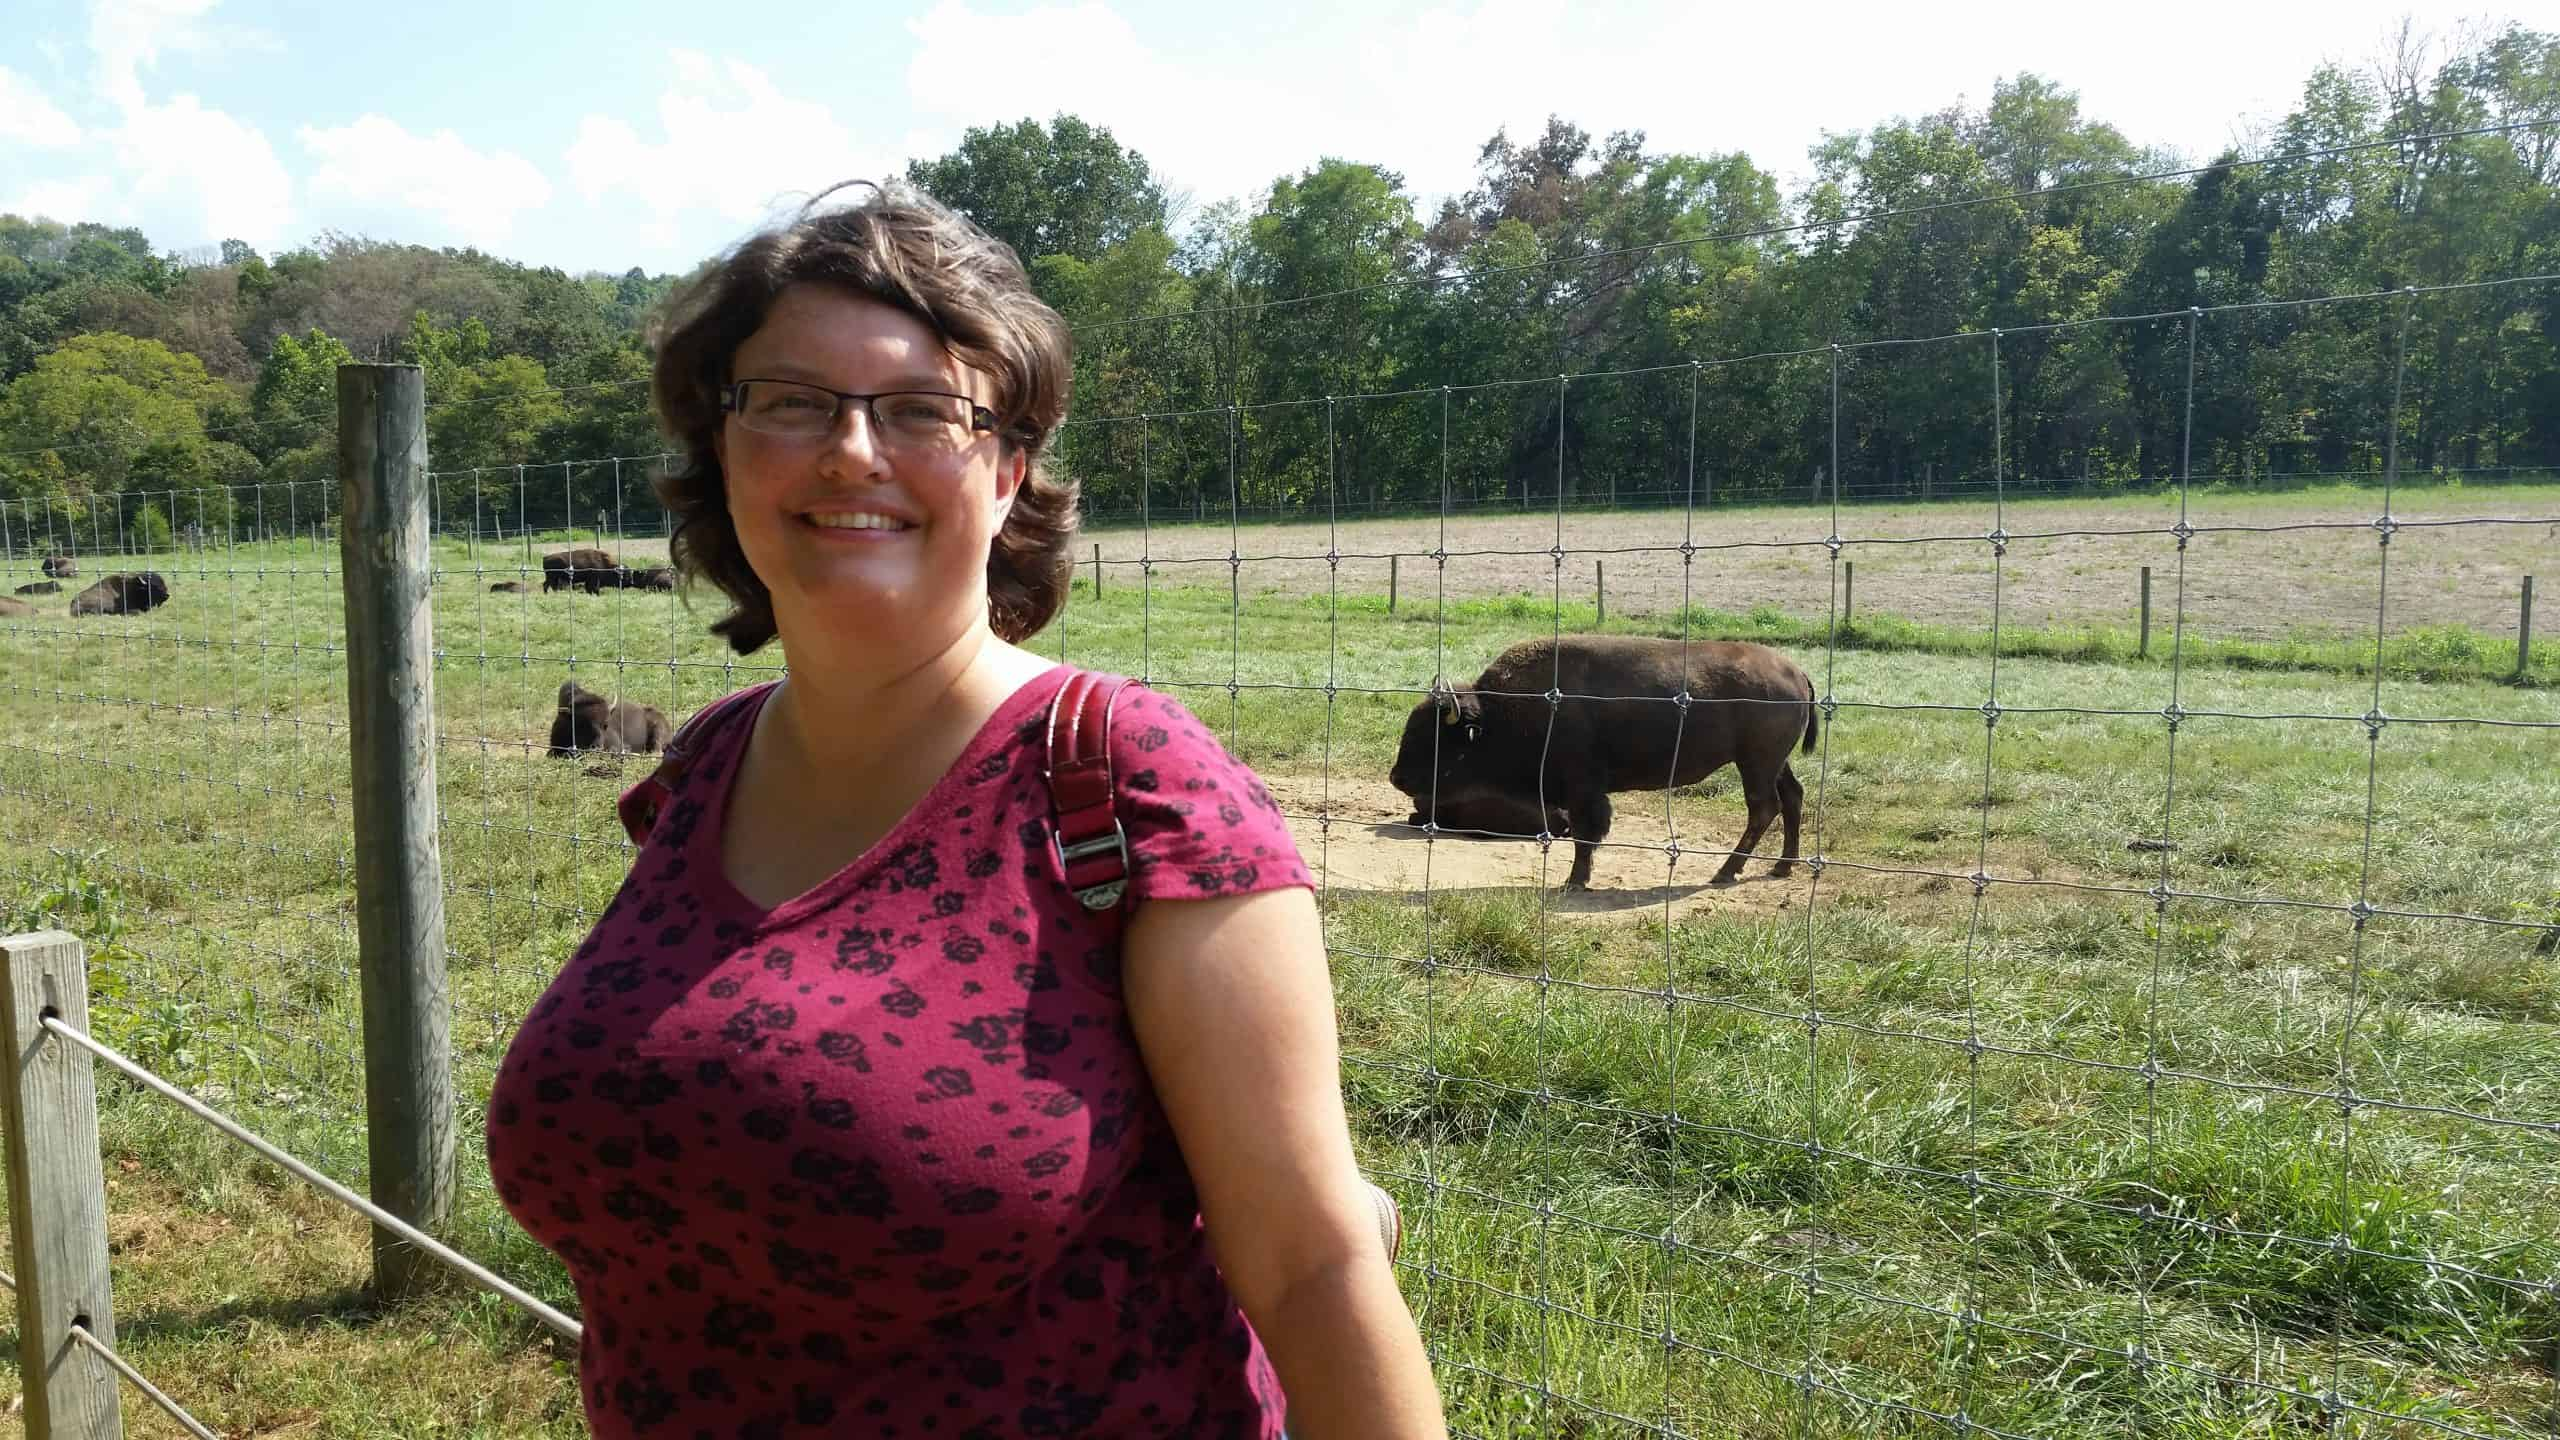 Alison smiles. She has short brown hair in thi picture and is wearing glasses. Bison are visible behind her